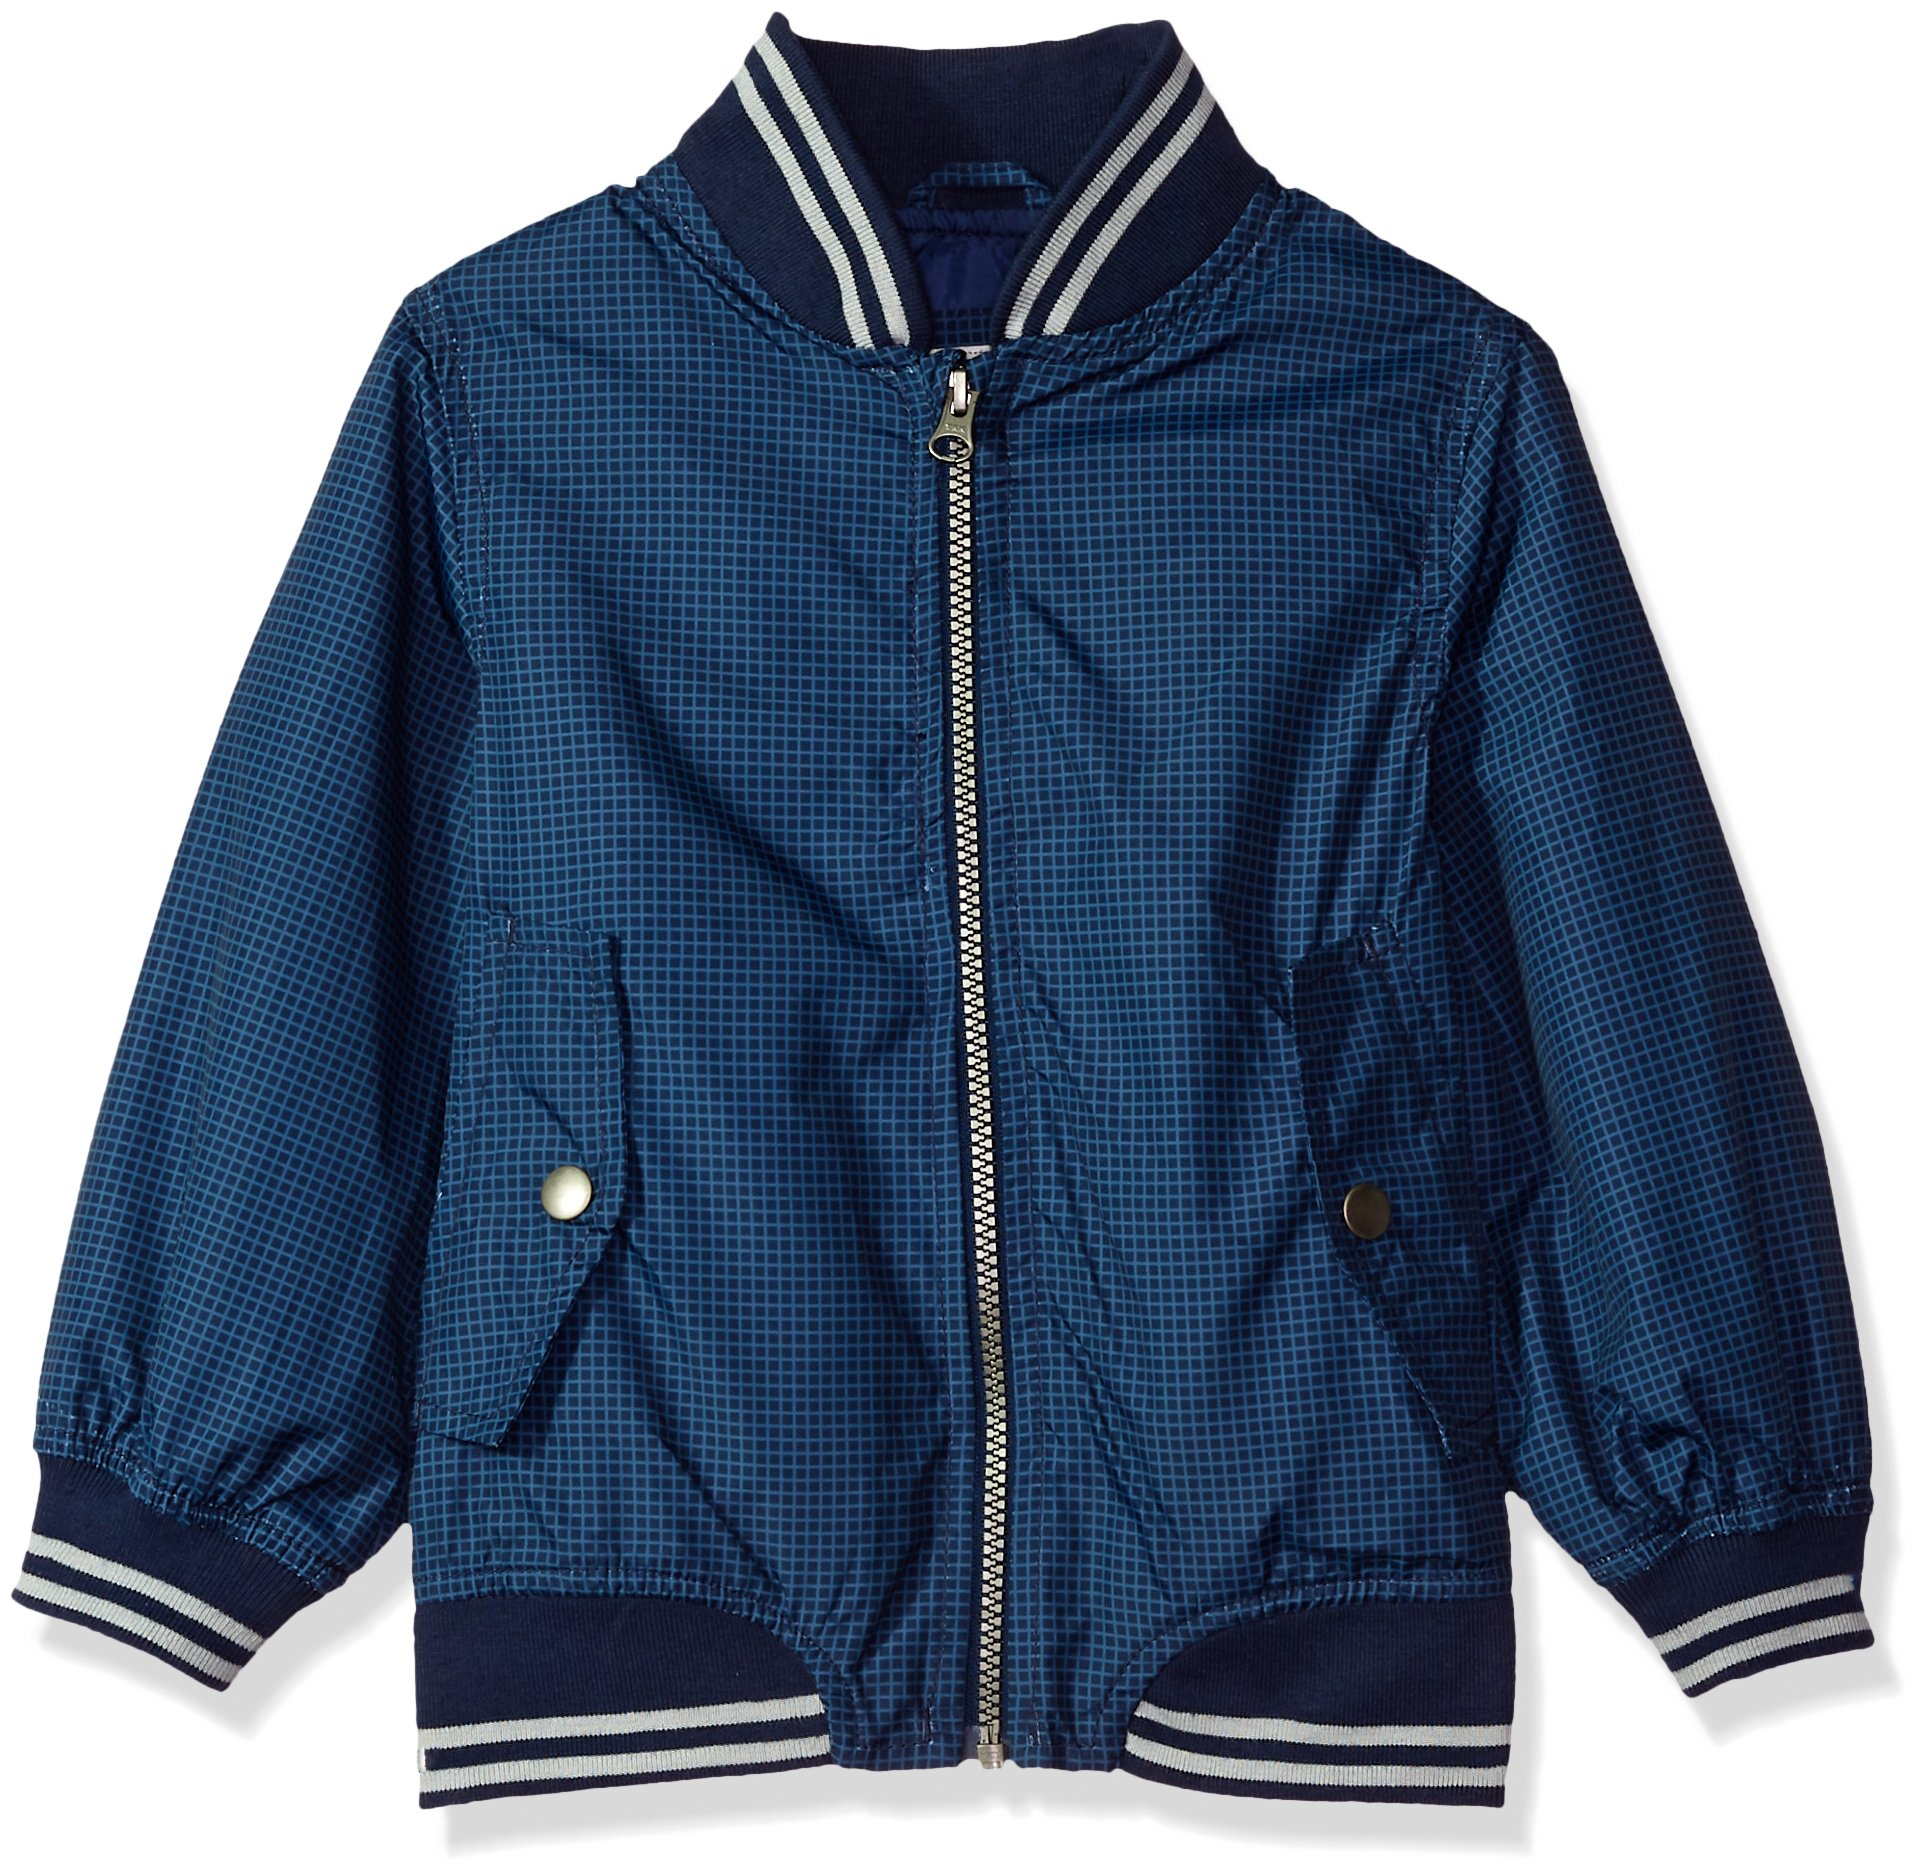 Carter's Toddler Boys' Lightweight Bomber Jacket, Navy, 4T by Carter's